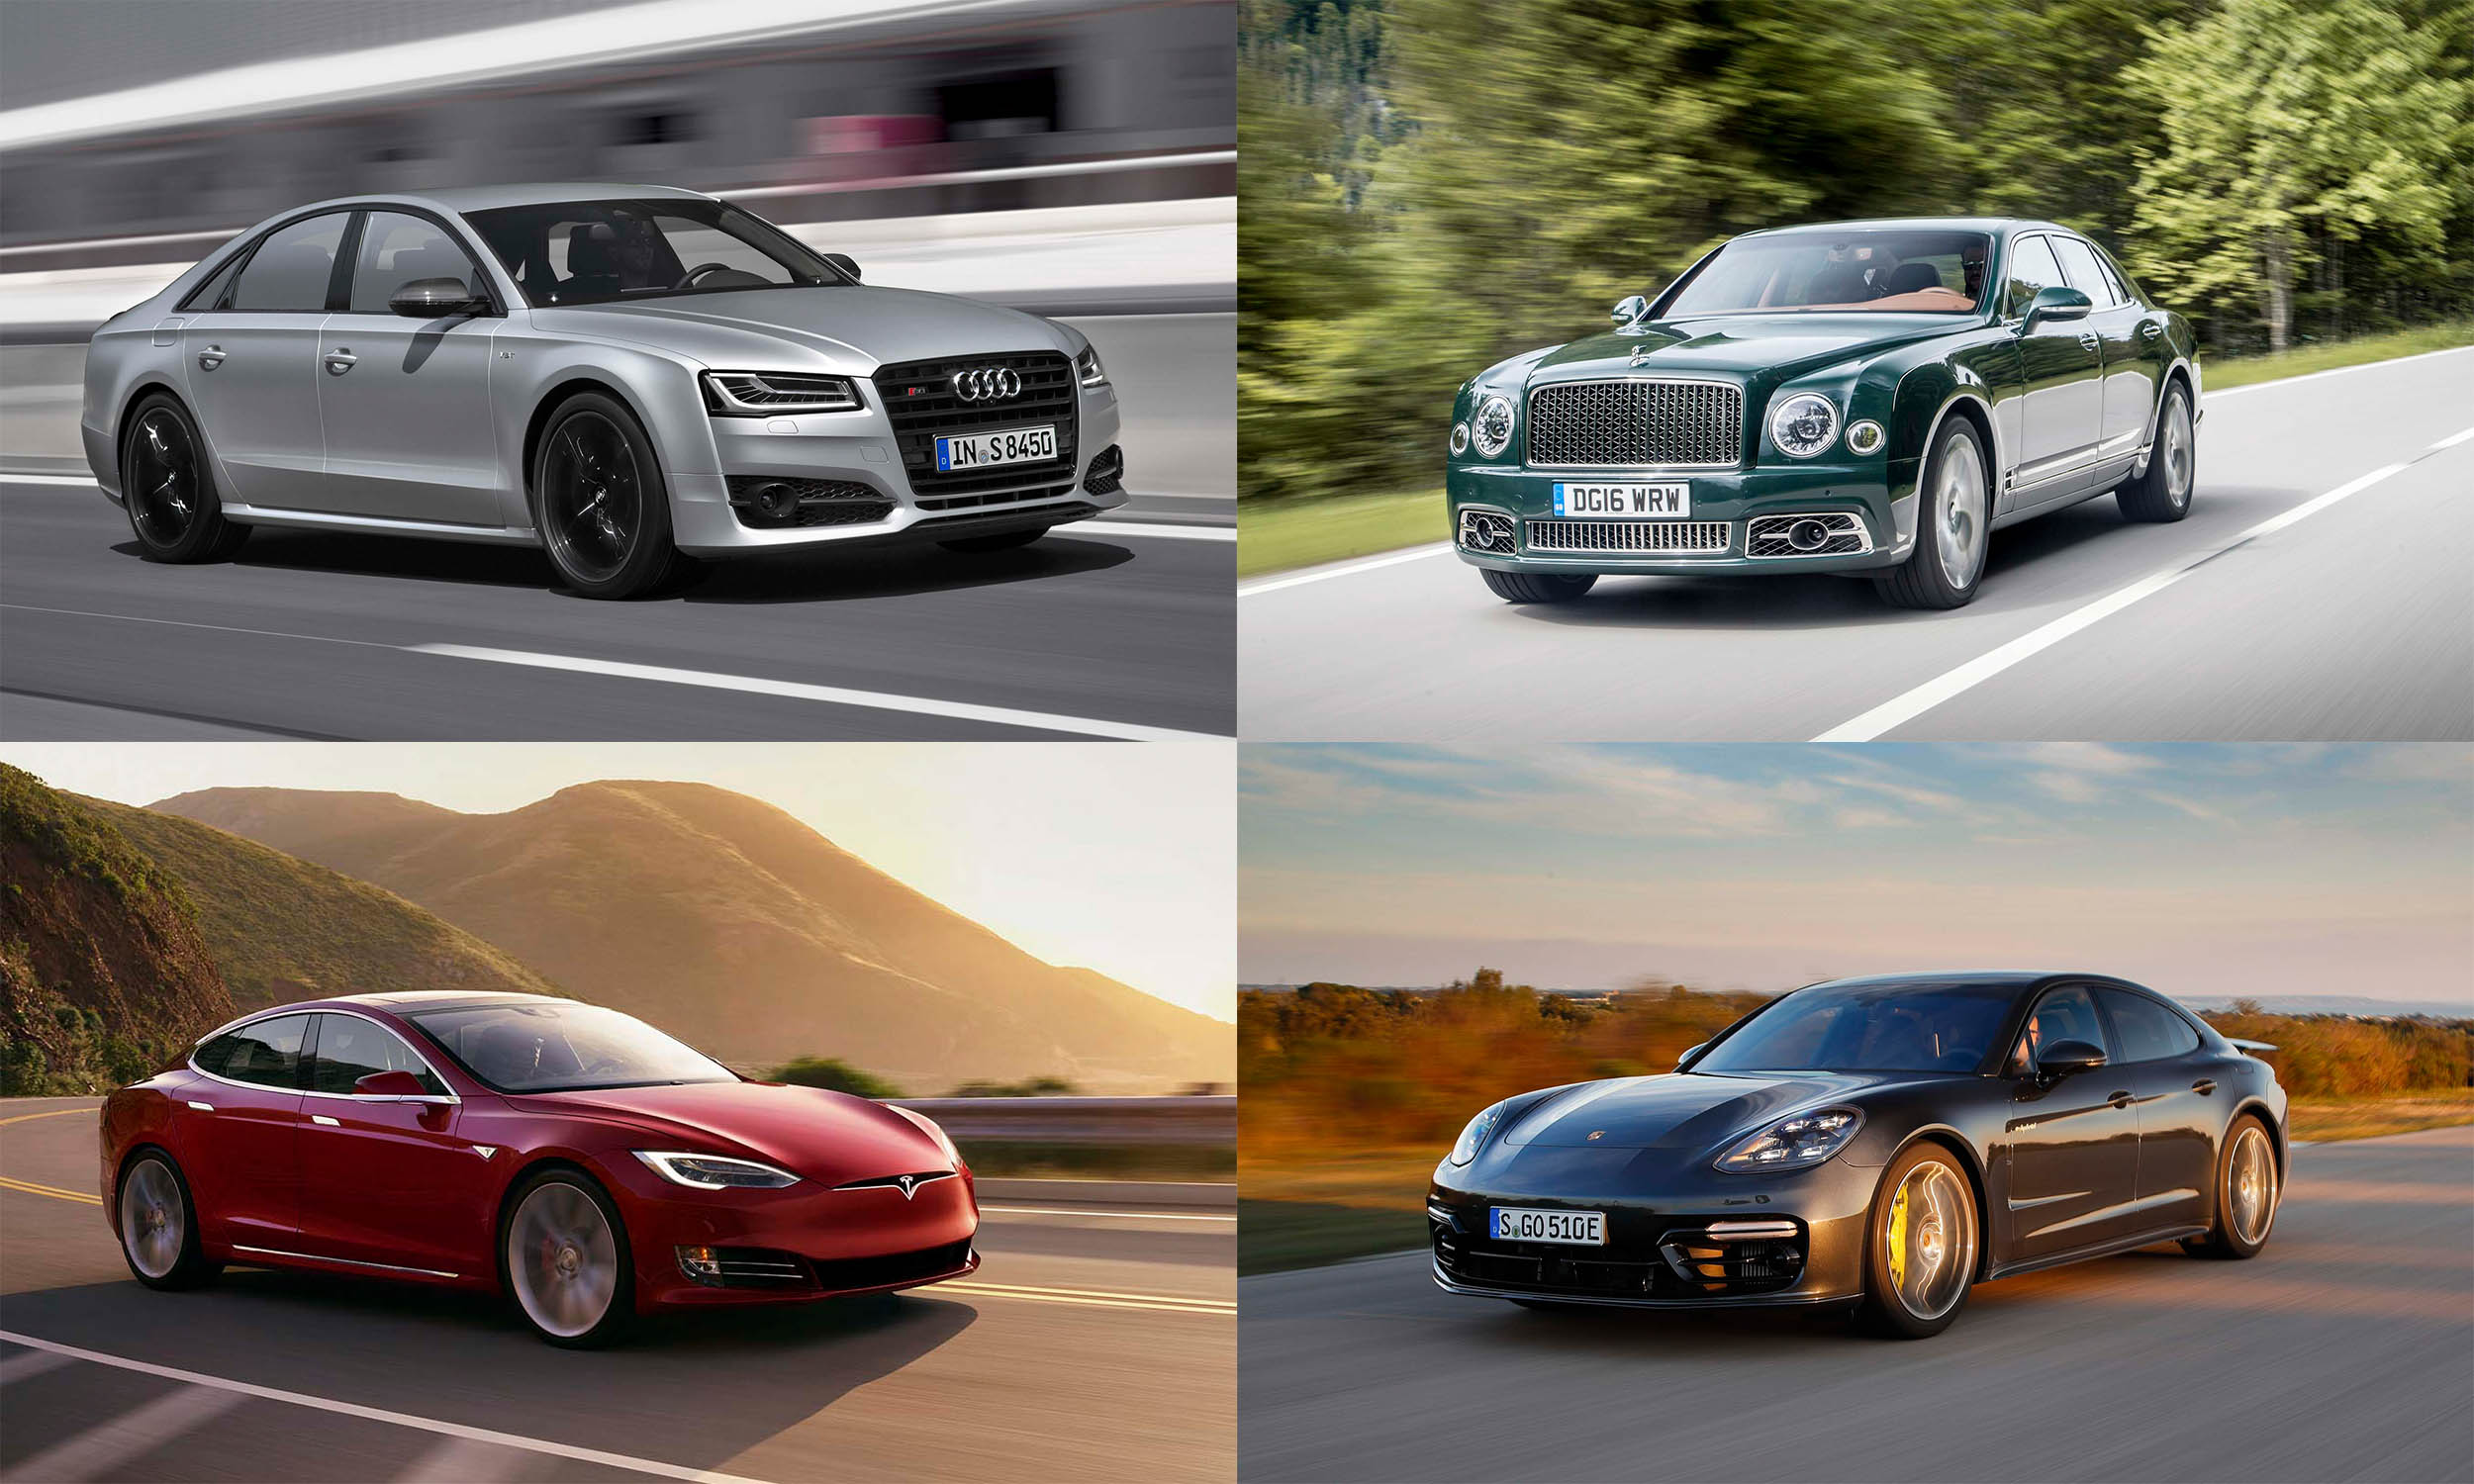 © Audi AG, © Tesla Motors, © Bentley Motors, © Porsche Cars North America